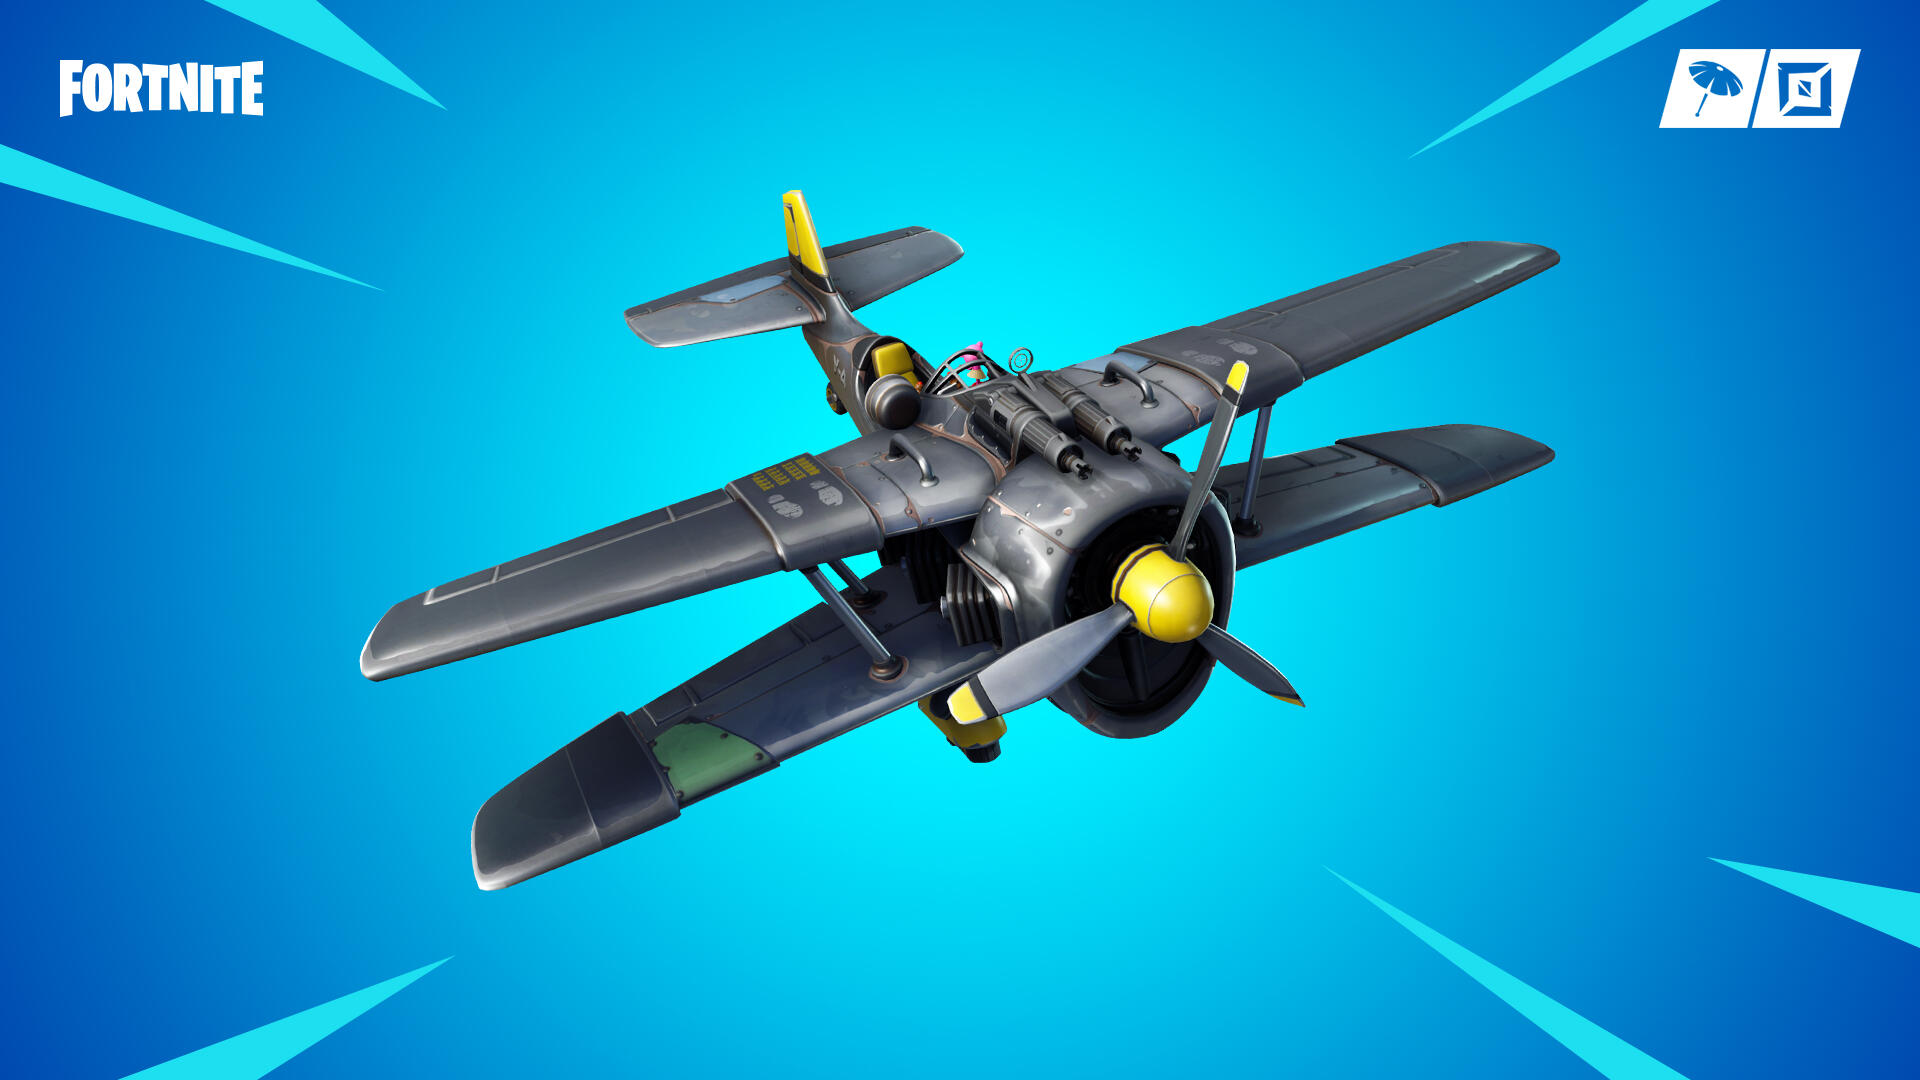 Fortnite Plane Timed Trial Locations - Where to Find and Complete Timed Trials in an X-4 Stormwing Plane